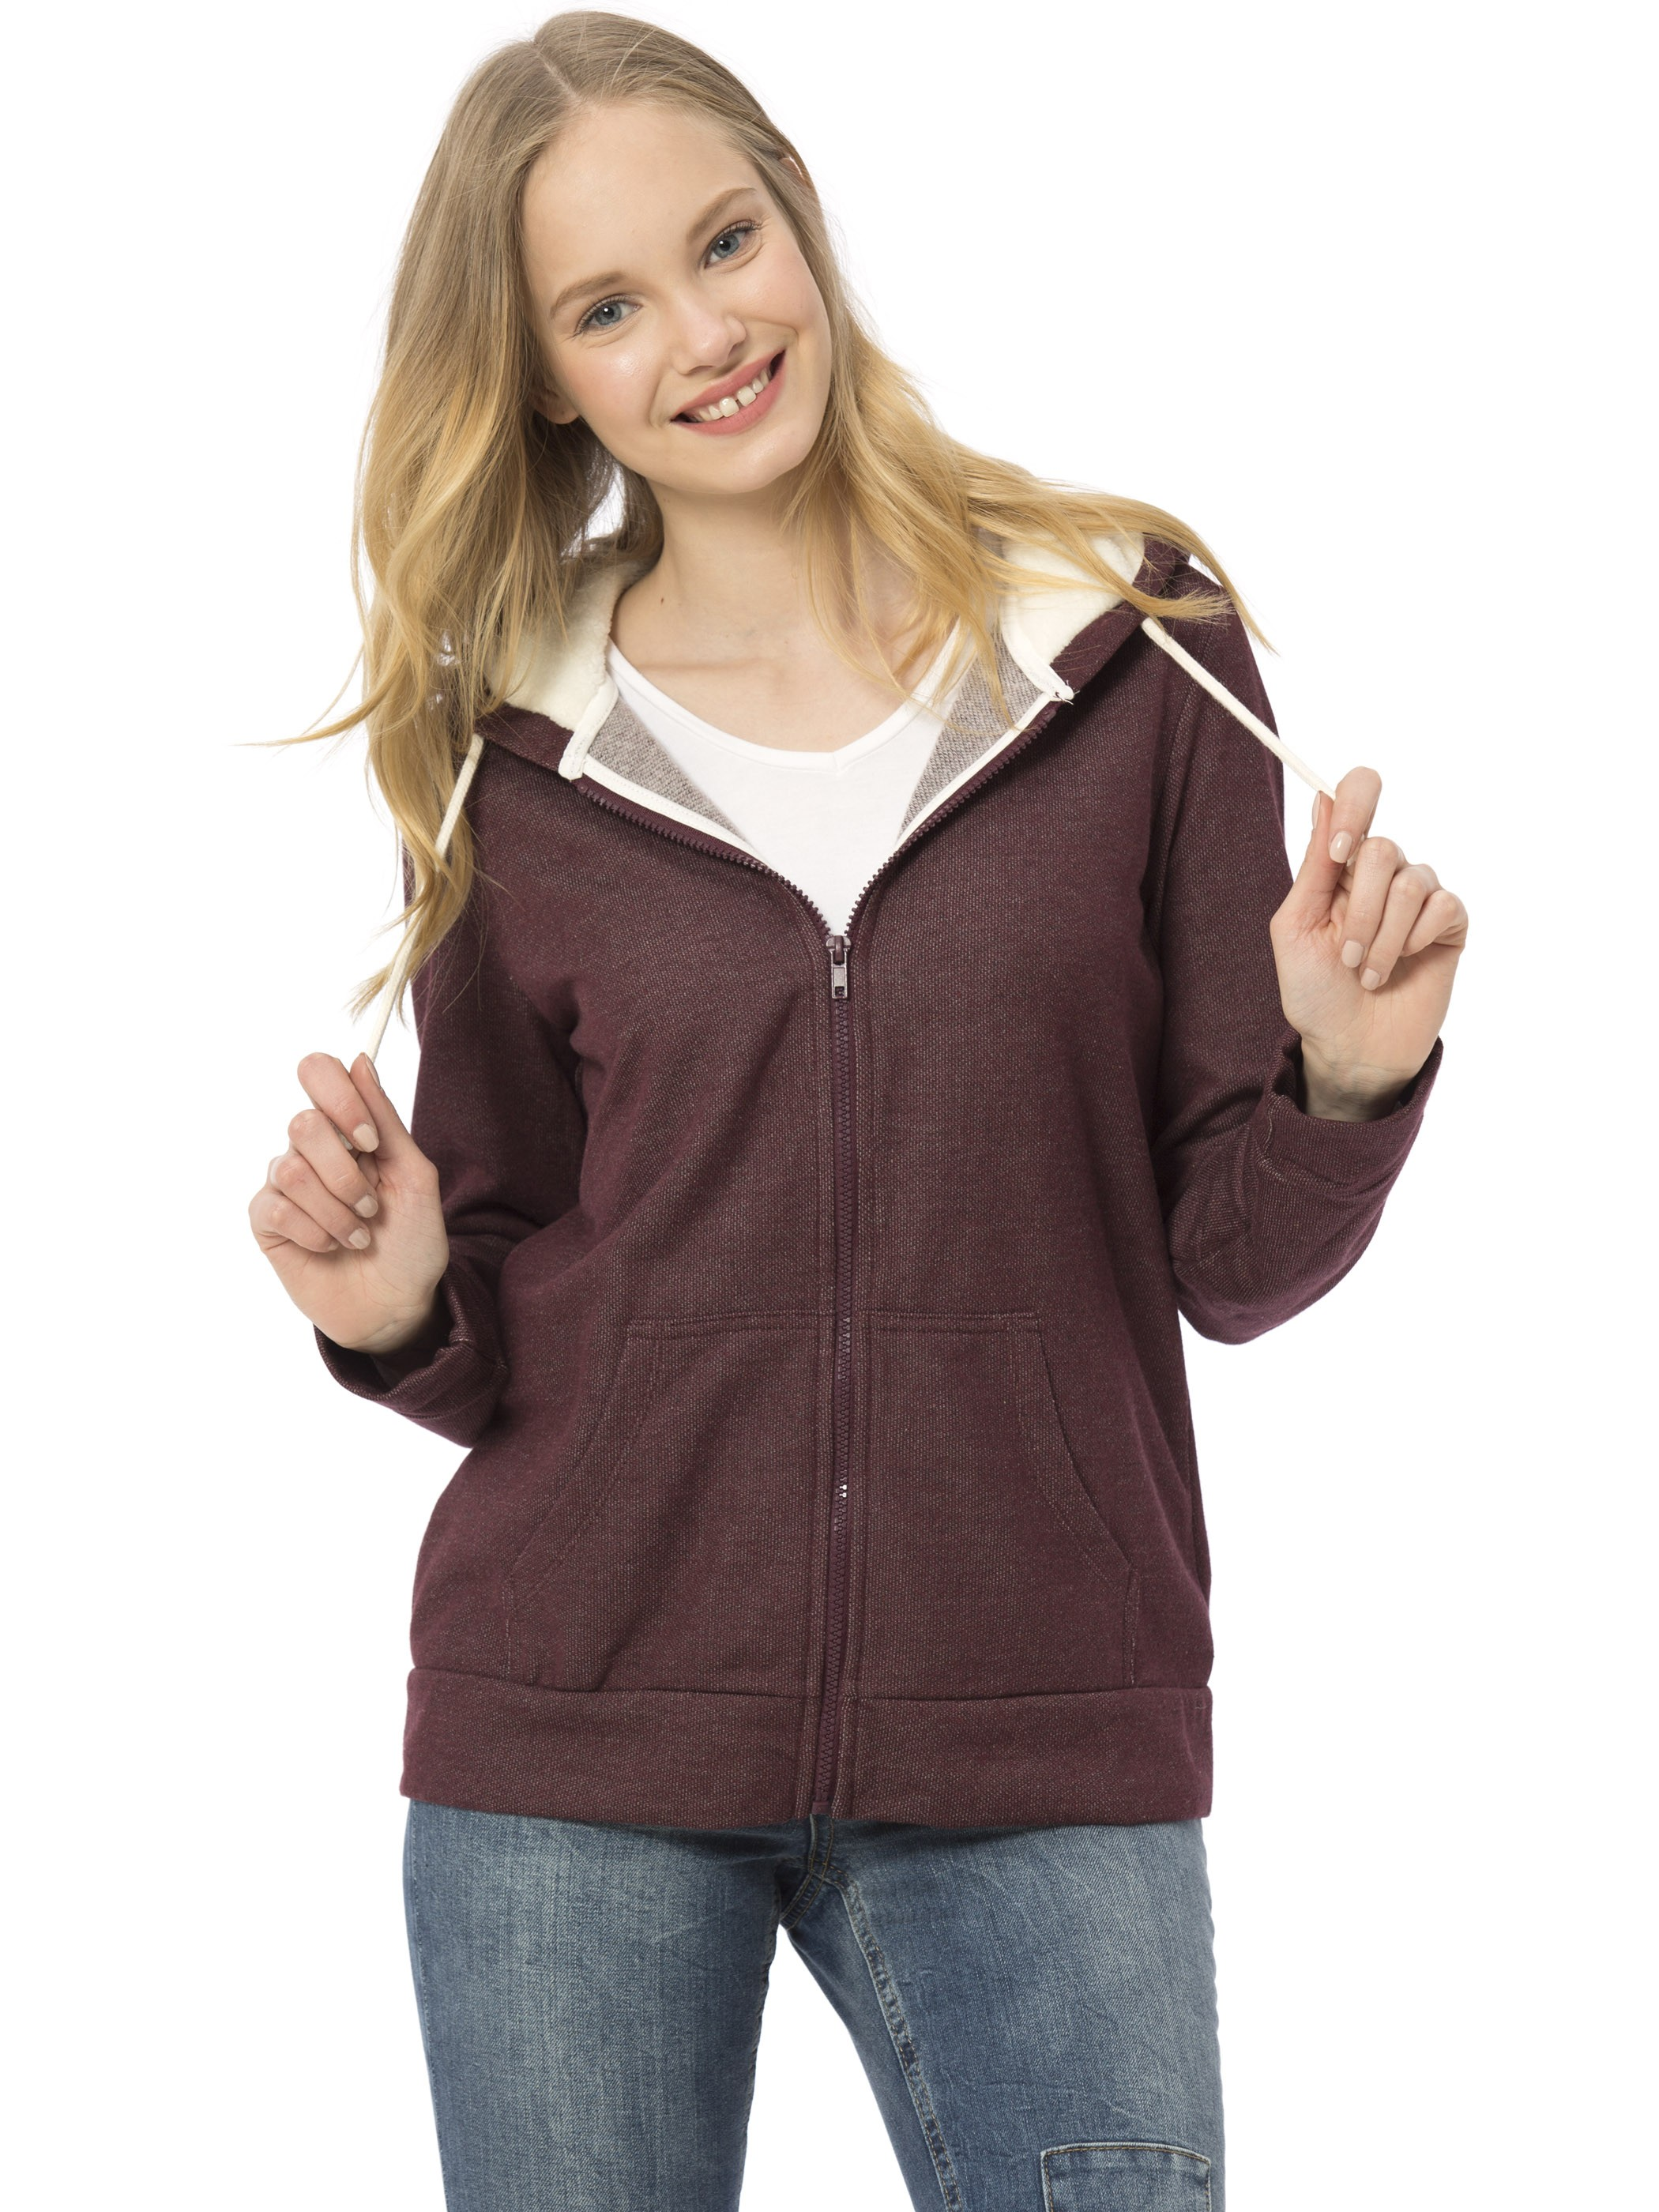 BORDEAUX - Cardigan Track Top - 7KG952Z8